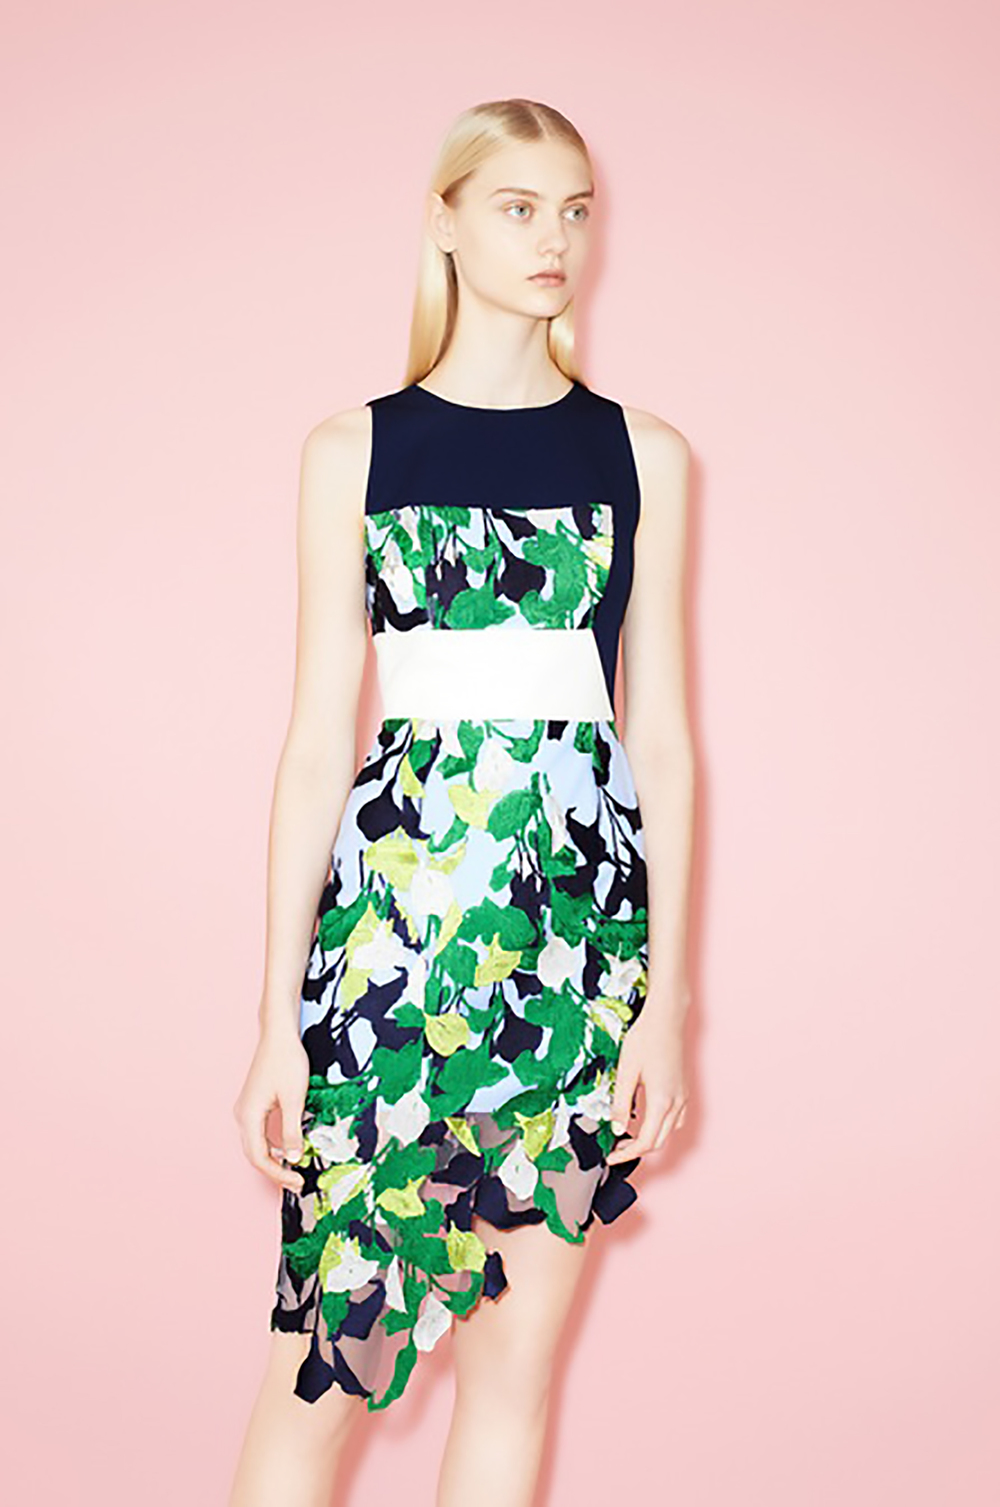 style.com peter pilotto resort 2014 look 22 peter pilotto 1500.jpg